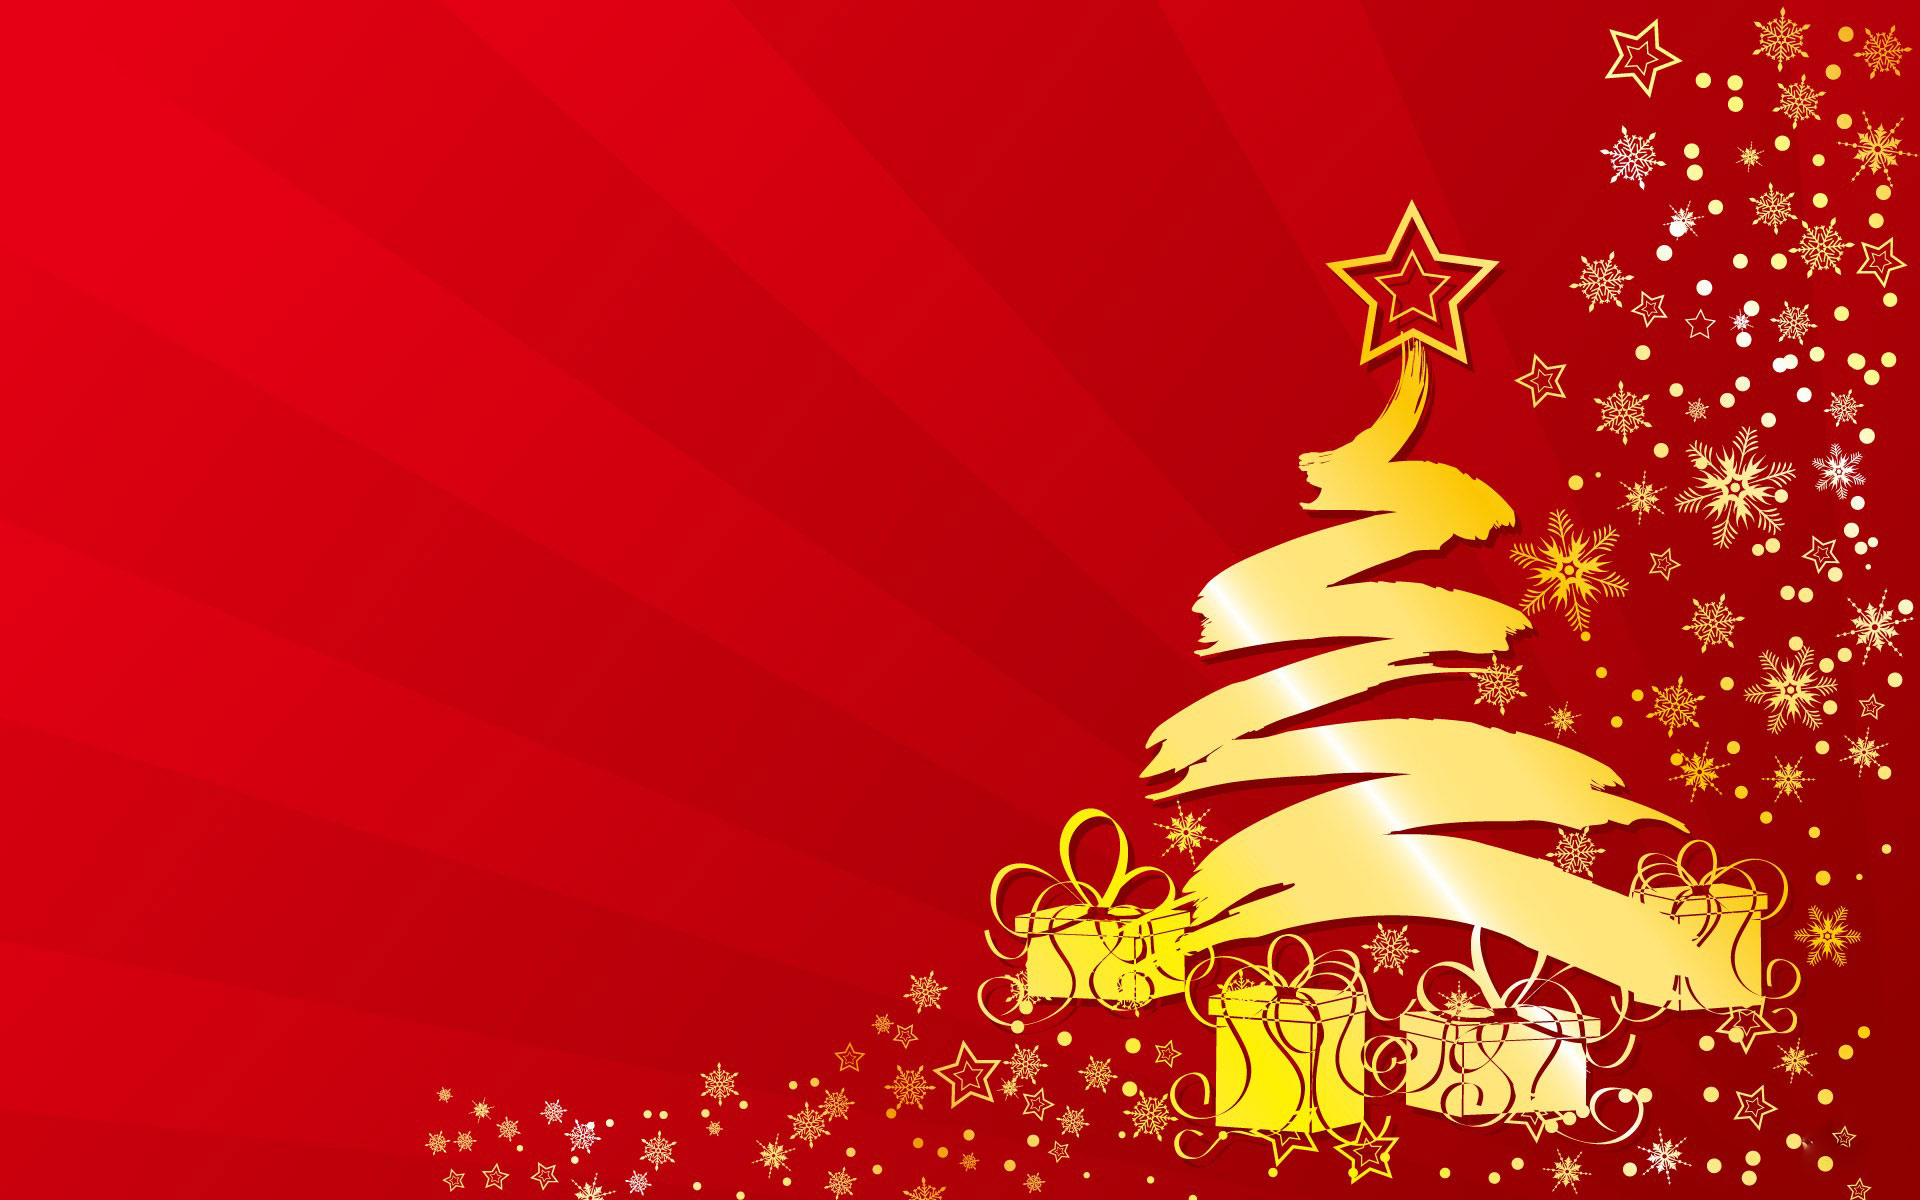 Christmas High Definition Wallpaper